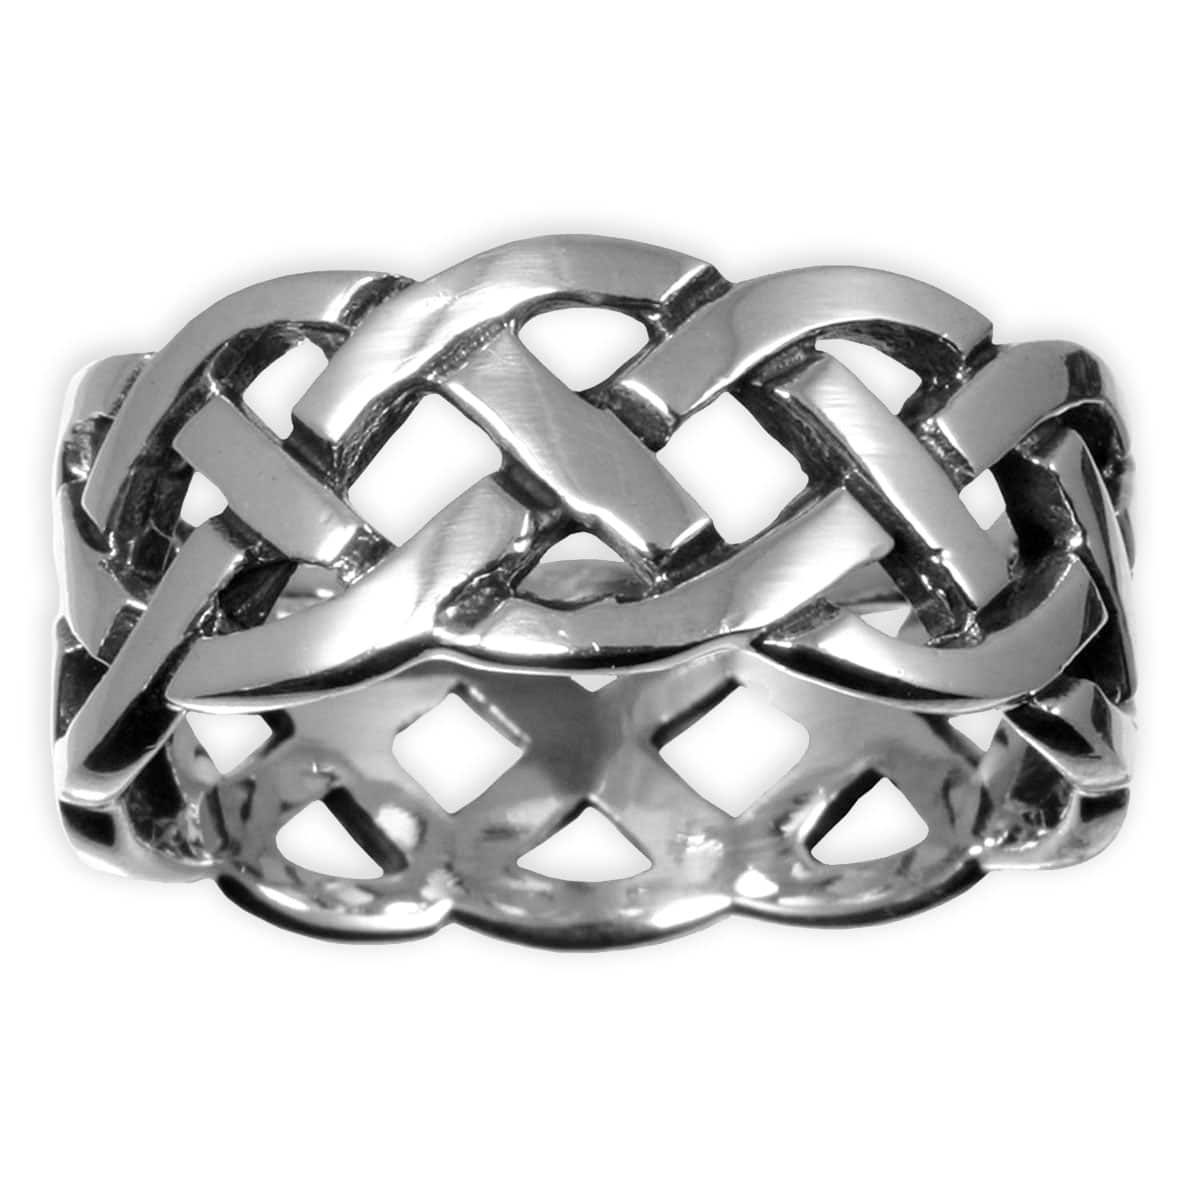 Stainless Steel Interlacing Knot Ring similar to a Sailor's Celtic knot